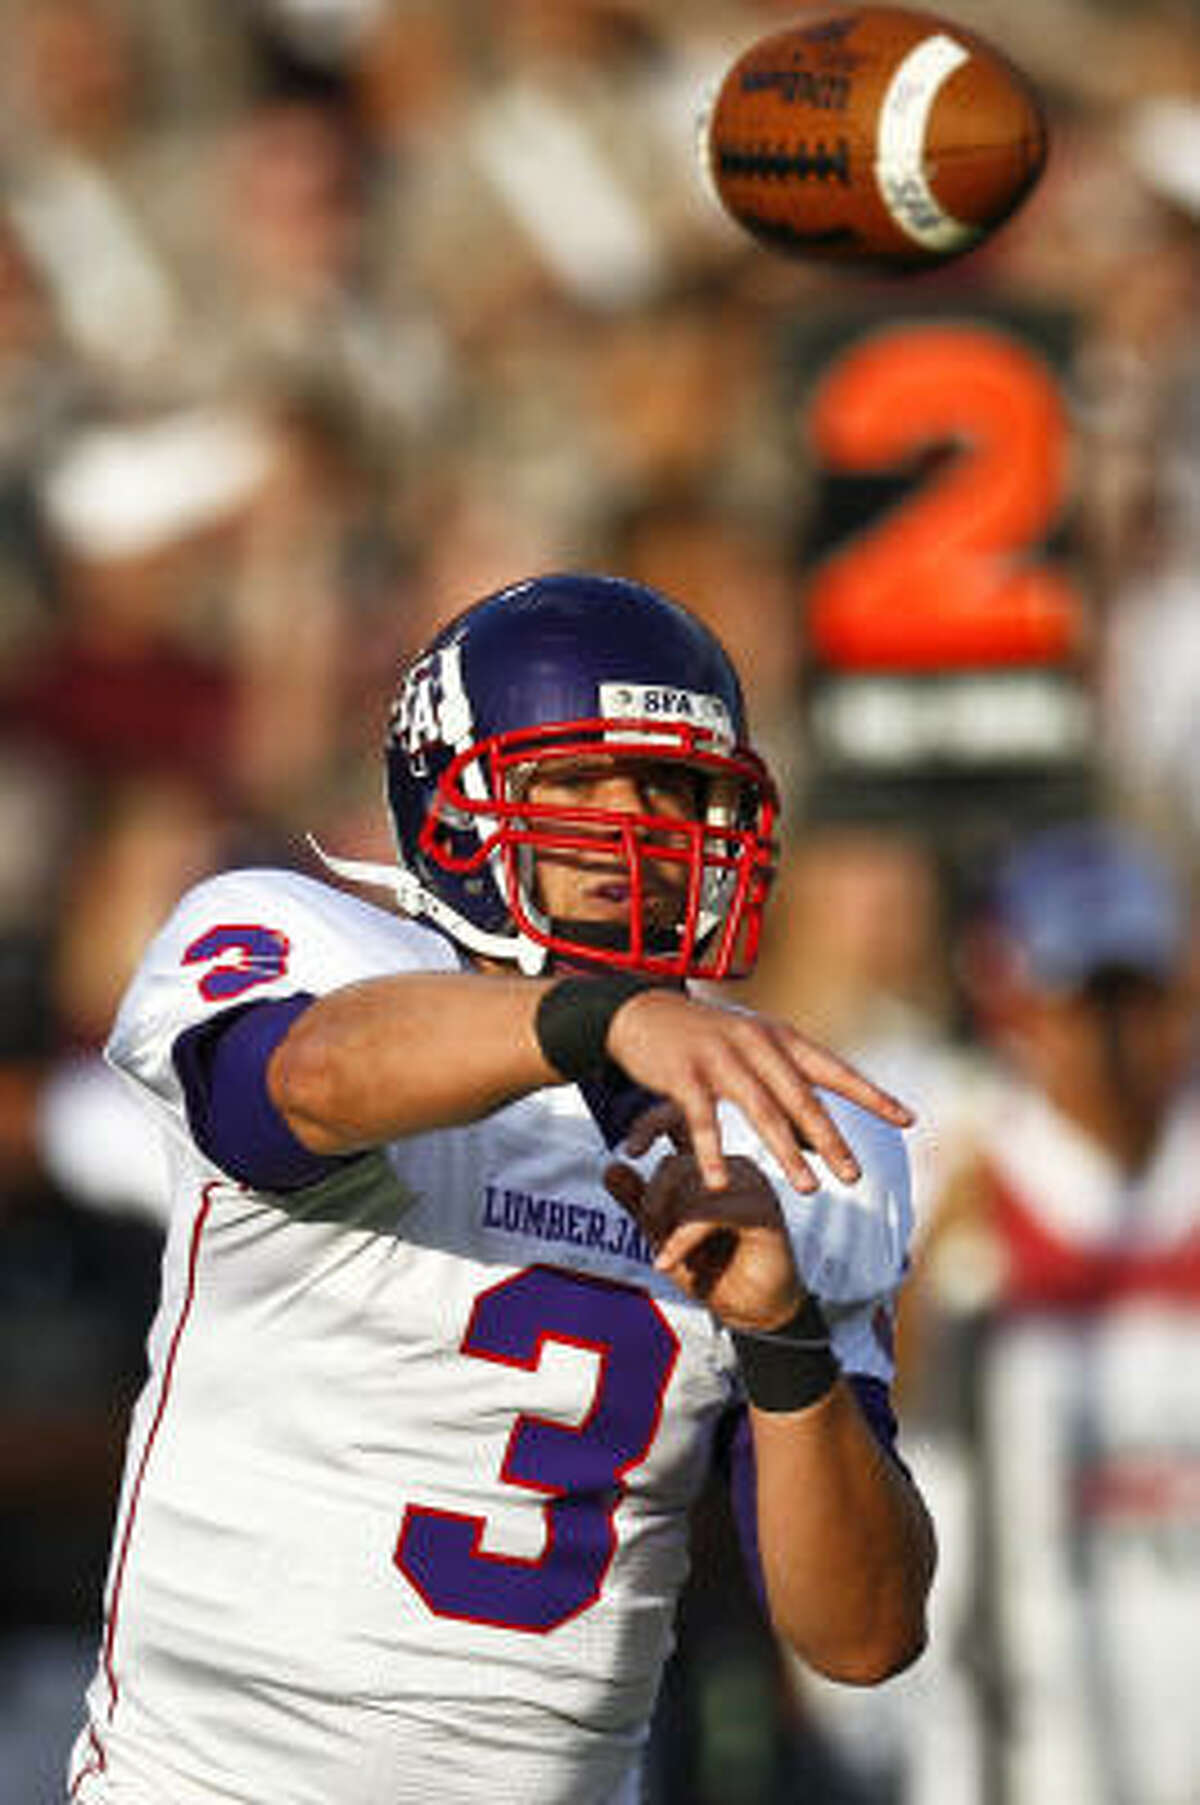 SFA quarterback Jeremy Moses has thrown for 1,865 yards and 16 touchdowns through six games.